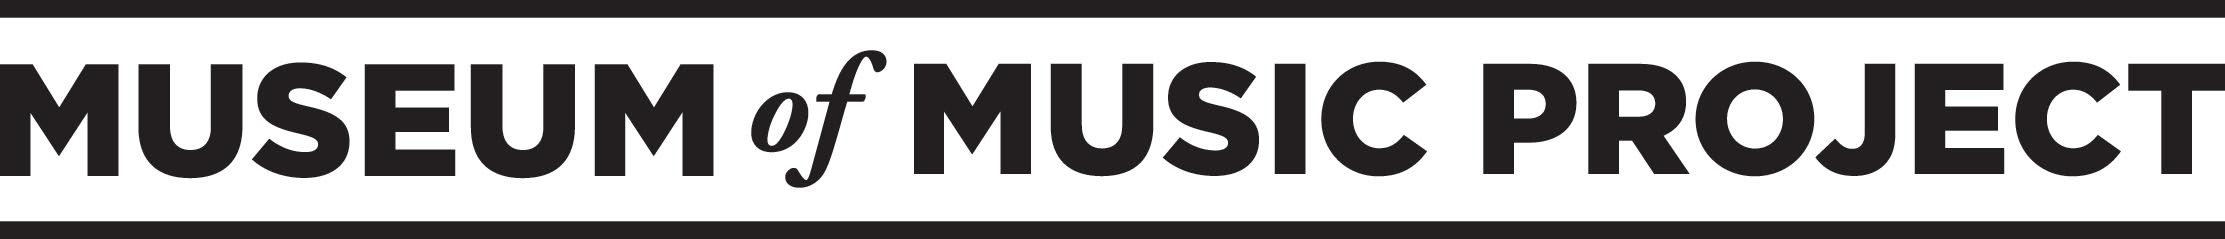 The Museum of Music PROJECT